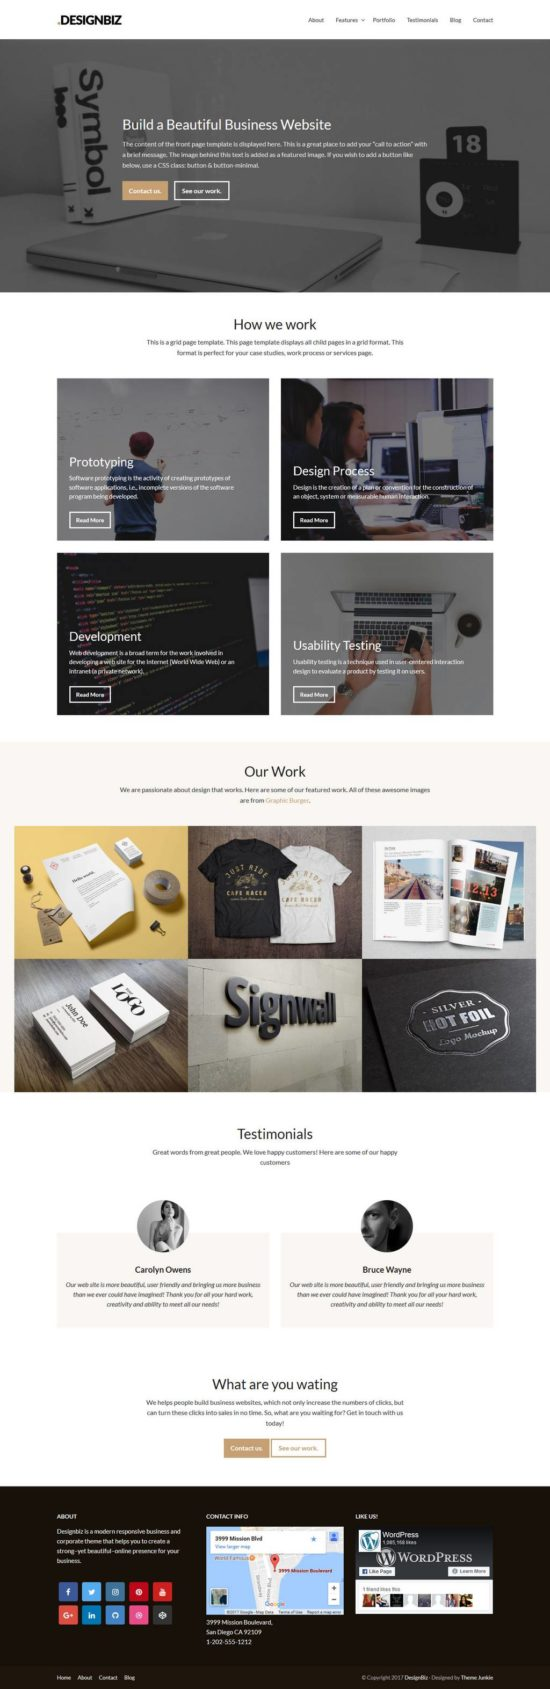 designbiz theme junkie wordpress theme 01 550x1689 - Designbiz WordPress Theme